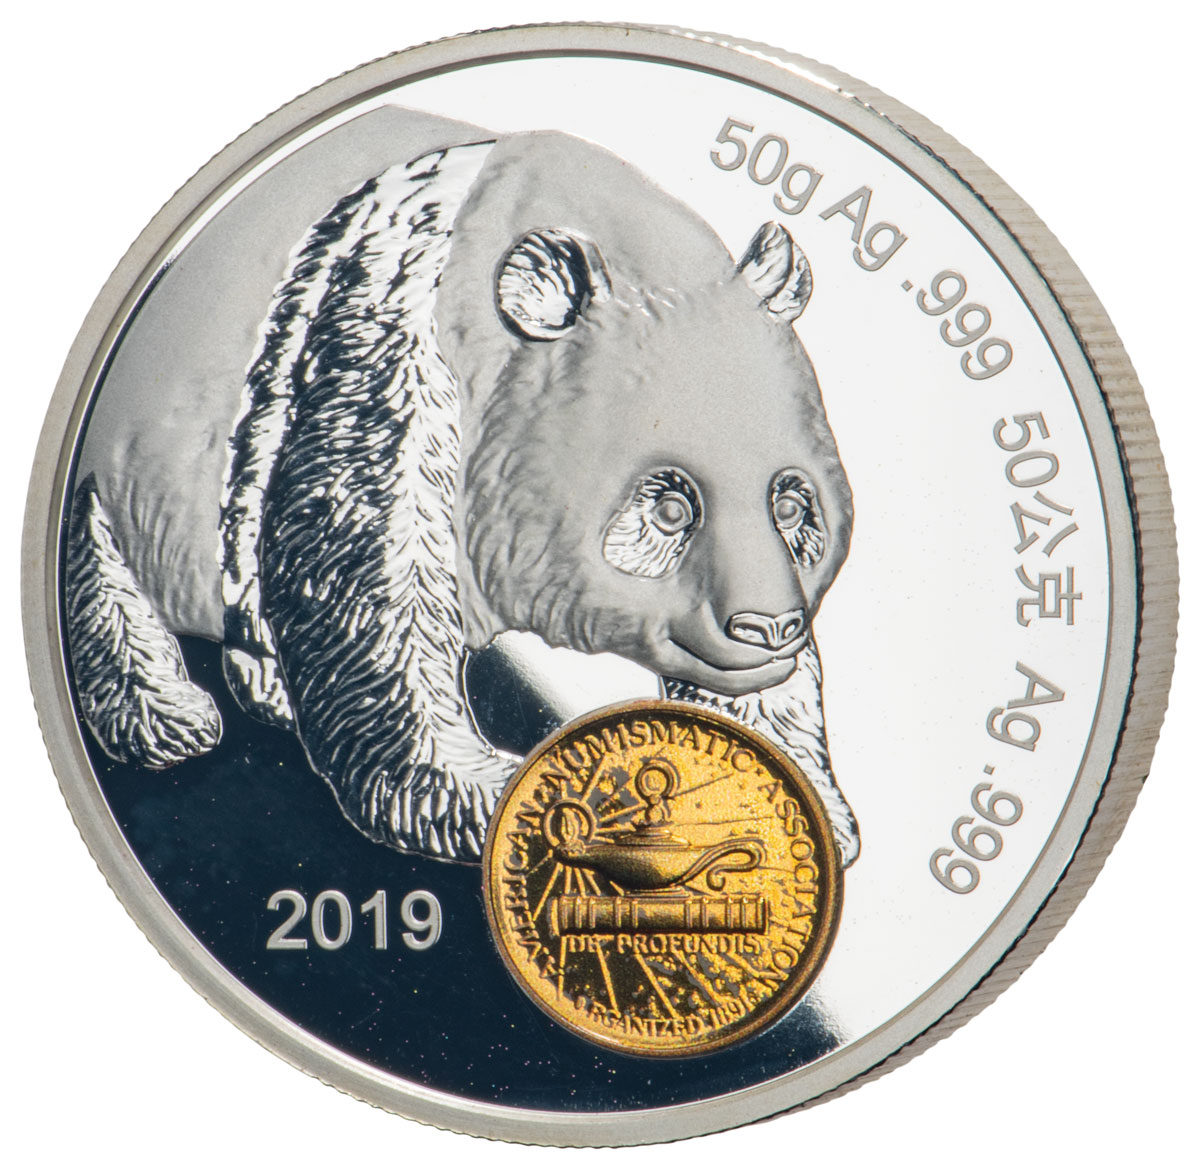 2019 China Chicago World's Fair of Money Show Panda 50 g Silver Proof Medal GEM Proof